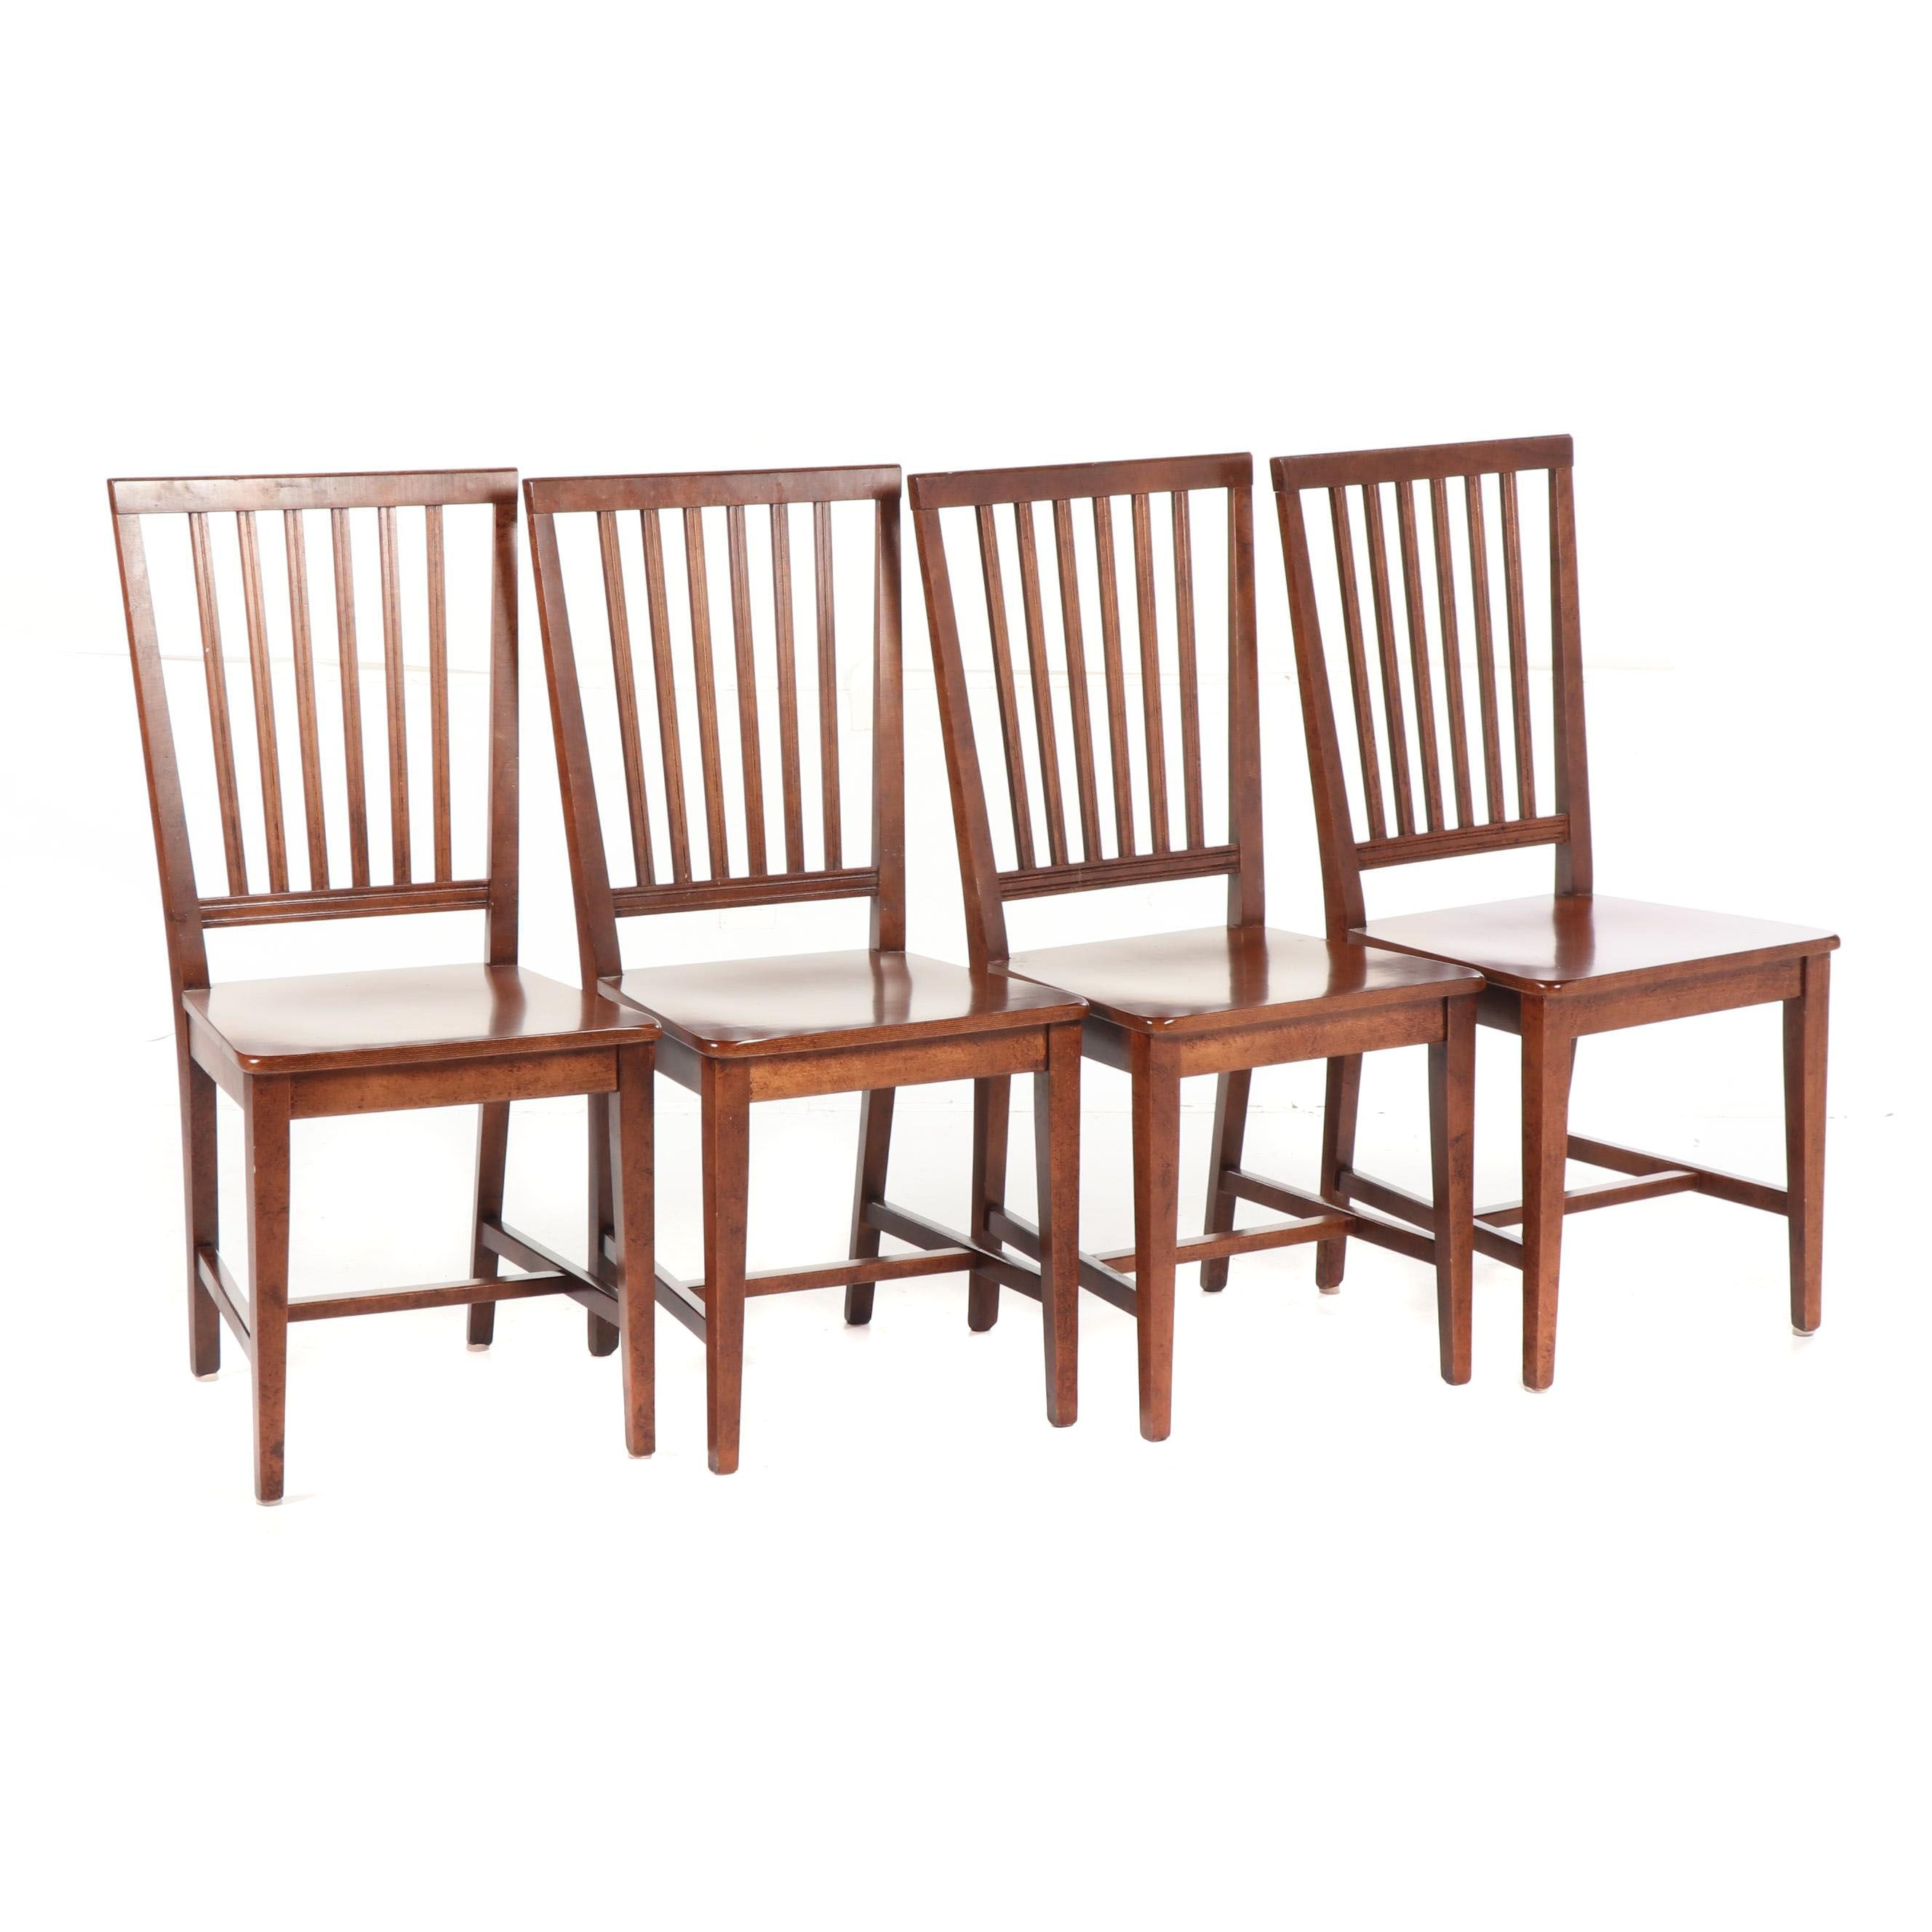 Contemporary Wood Dining Chairs by Buying and Design